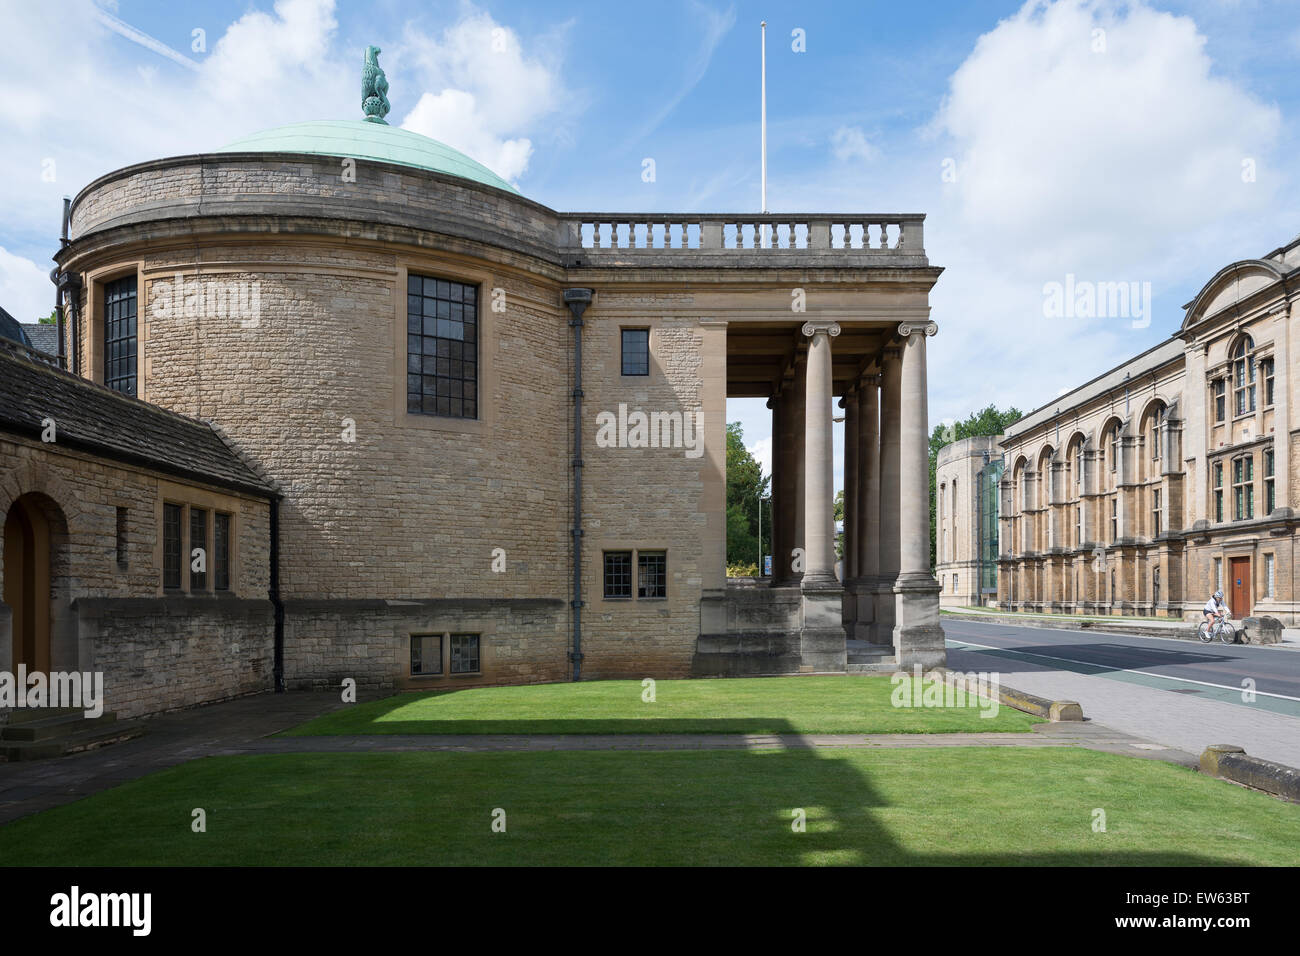 Oxford, United Kingdom of Great Britain, the Rhodes House in South Parks Road - Stock Image